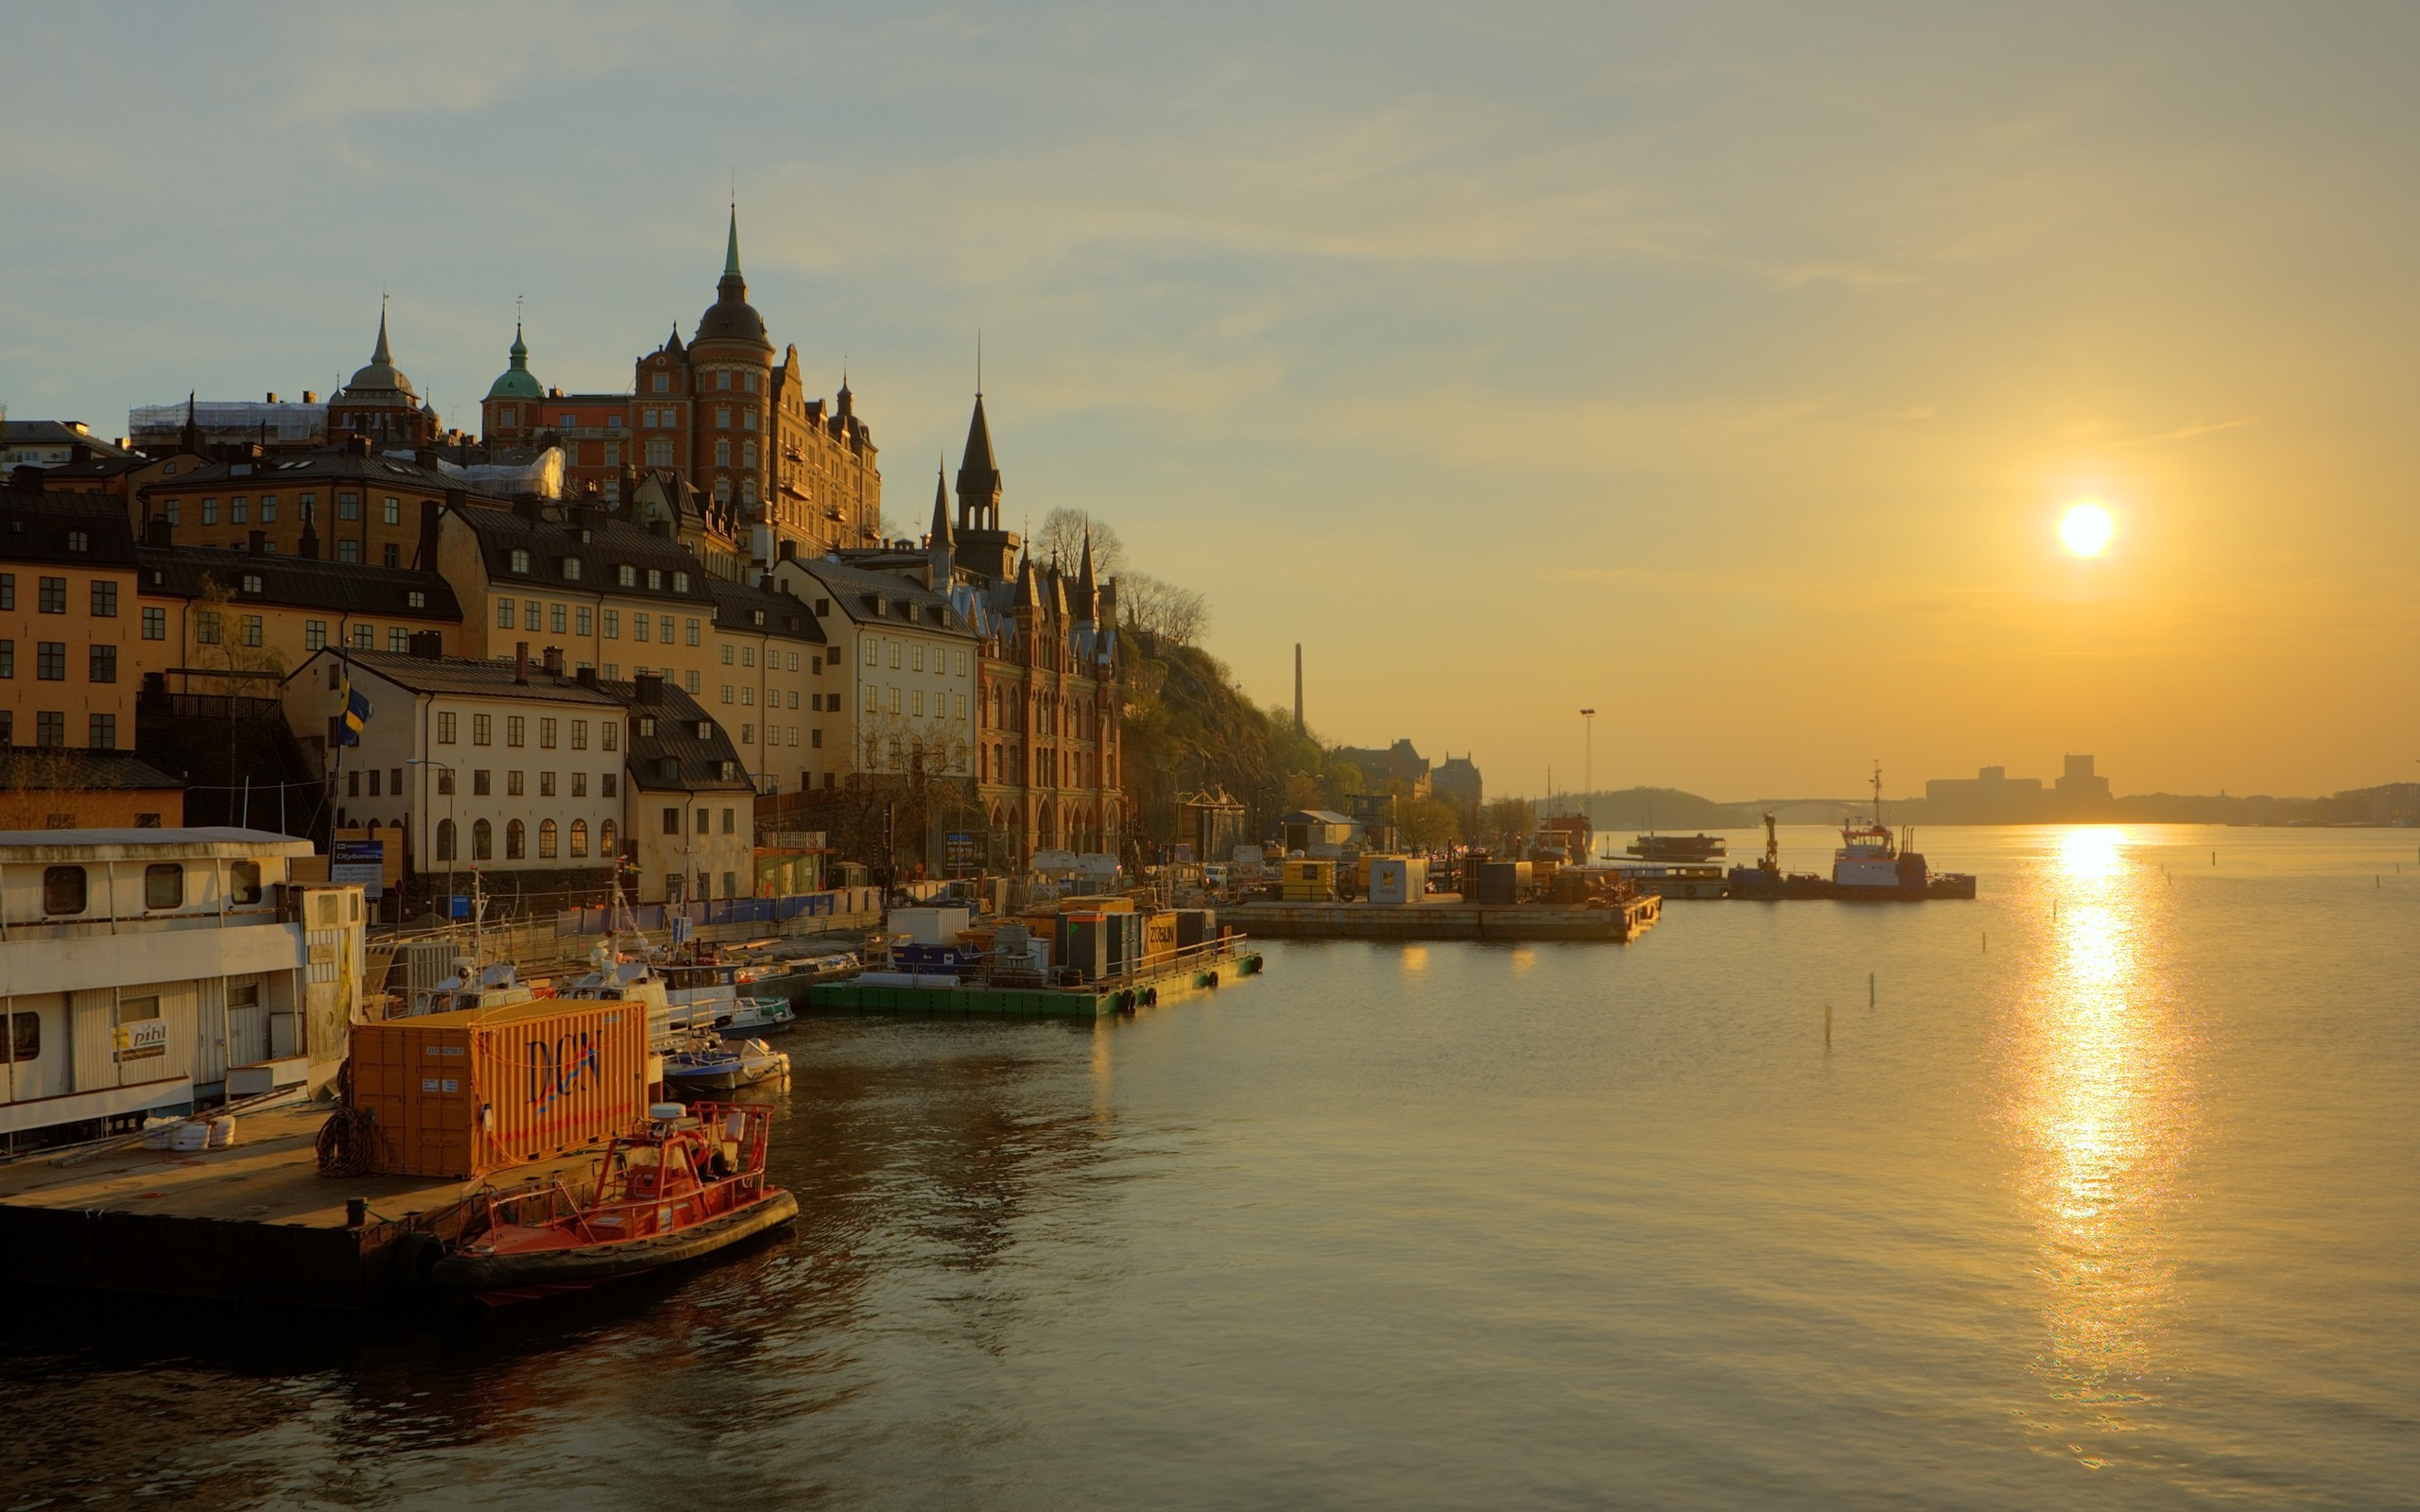 Castles cityscapes sweden cities HD Wallpaper